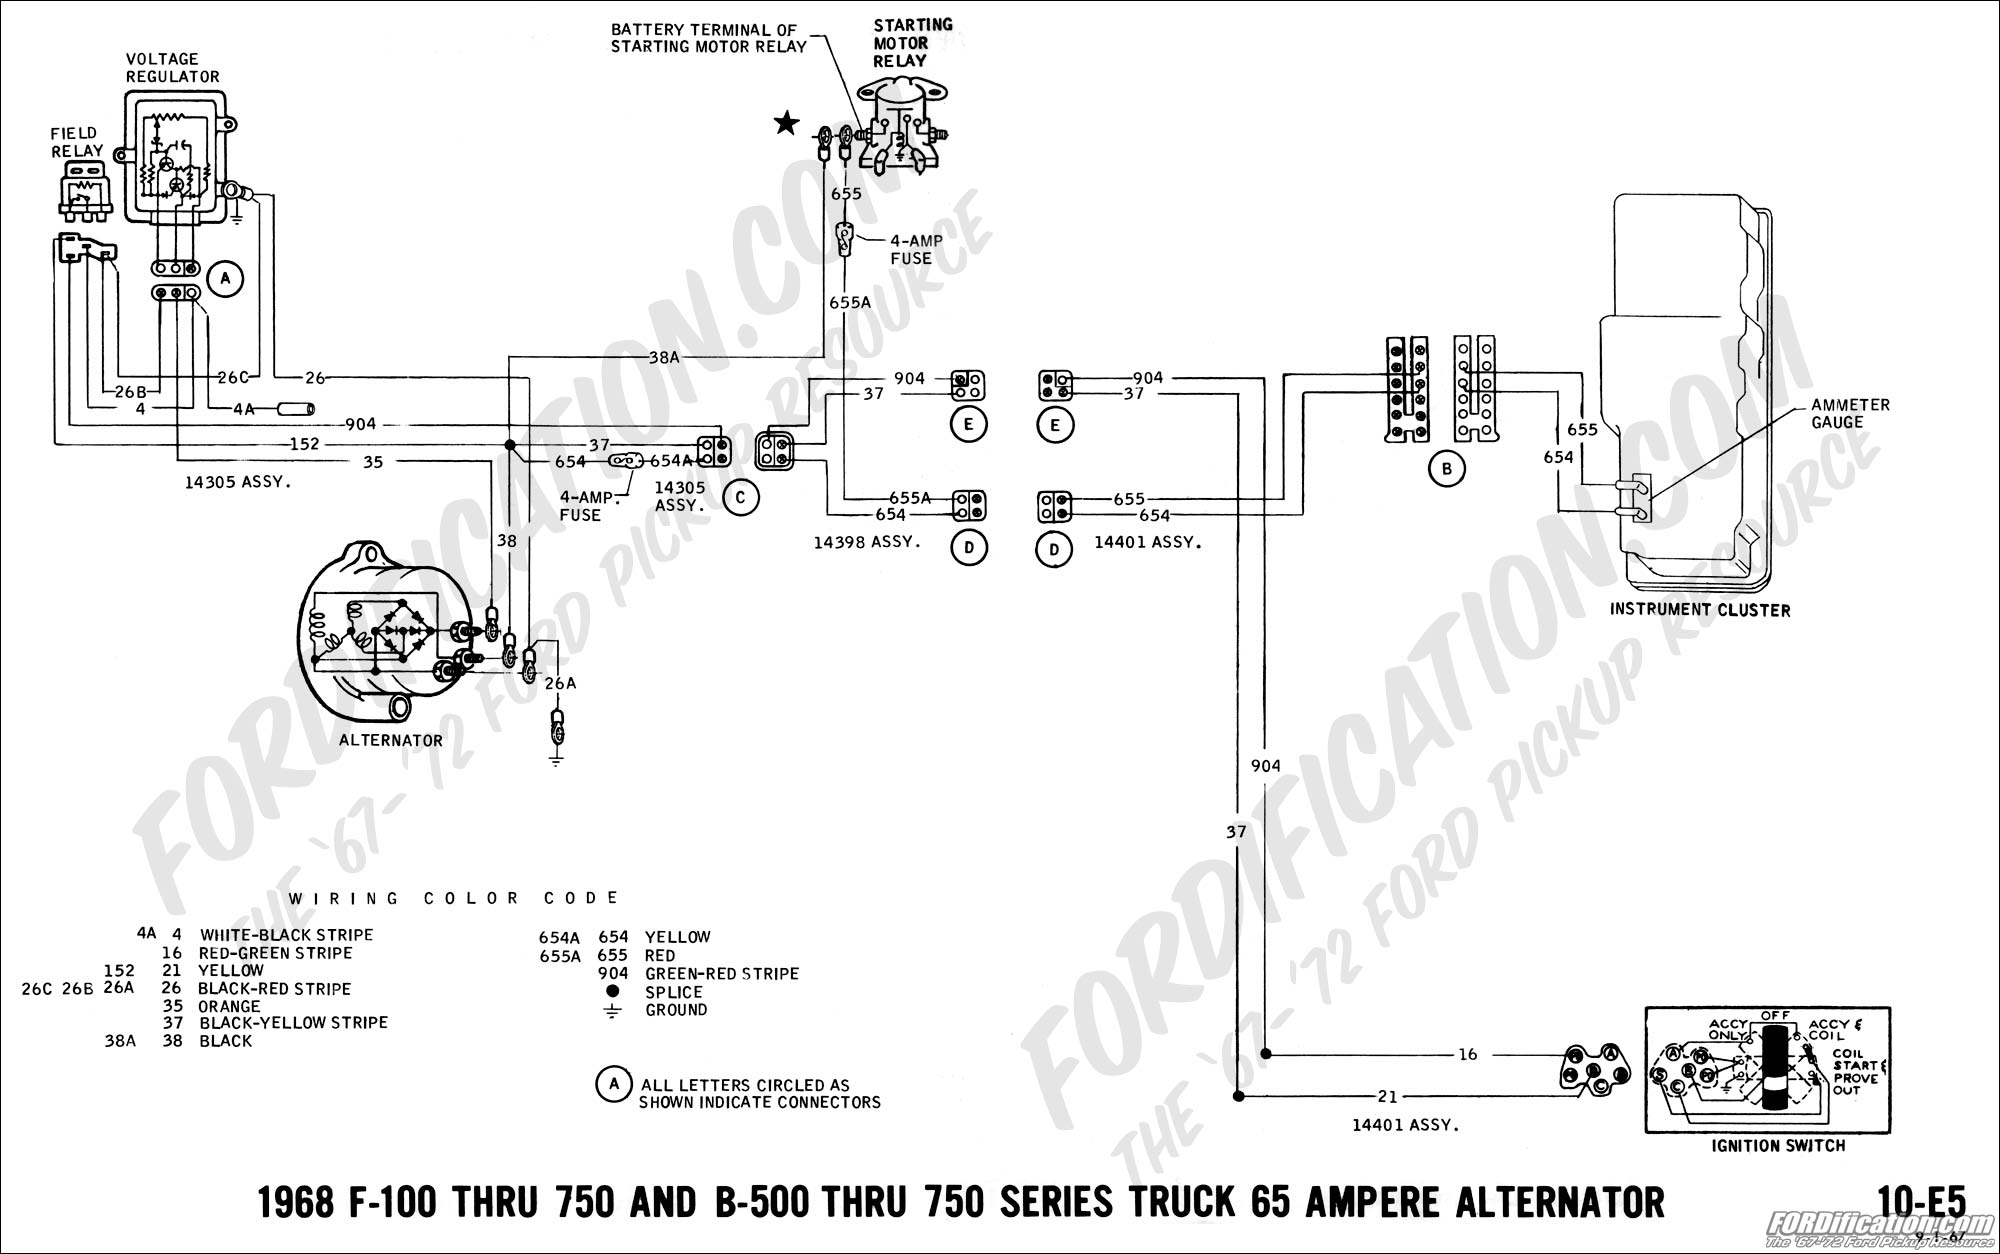 Beetle Alternator Wiring Diagram 74 F100 Vw Diagram1968 Ford Mustang Harness Simple